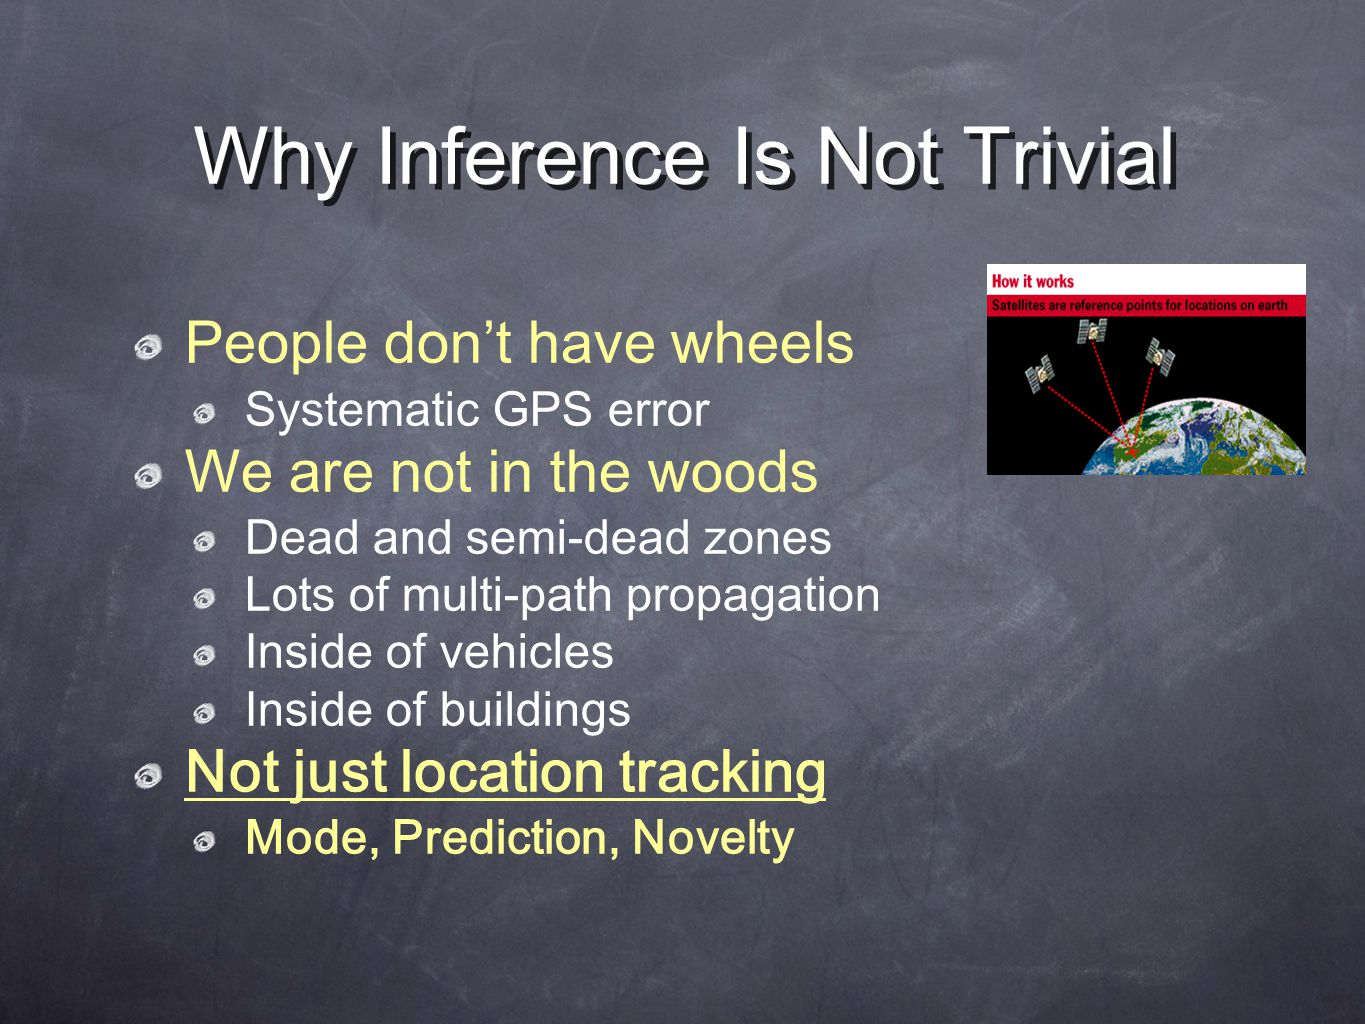 Why Inference Is Not Trivial People don't have wheels Systematic GPS error We are not in the woods Dead and semi-dead zones Lots of multi-path propagation Inside of vehicles Inside of buildings Not just location tracking Mode, Prediction, Novelty